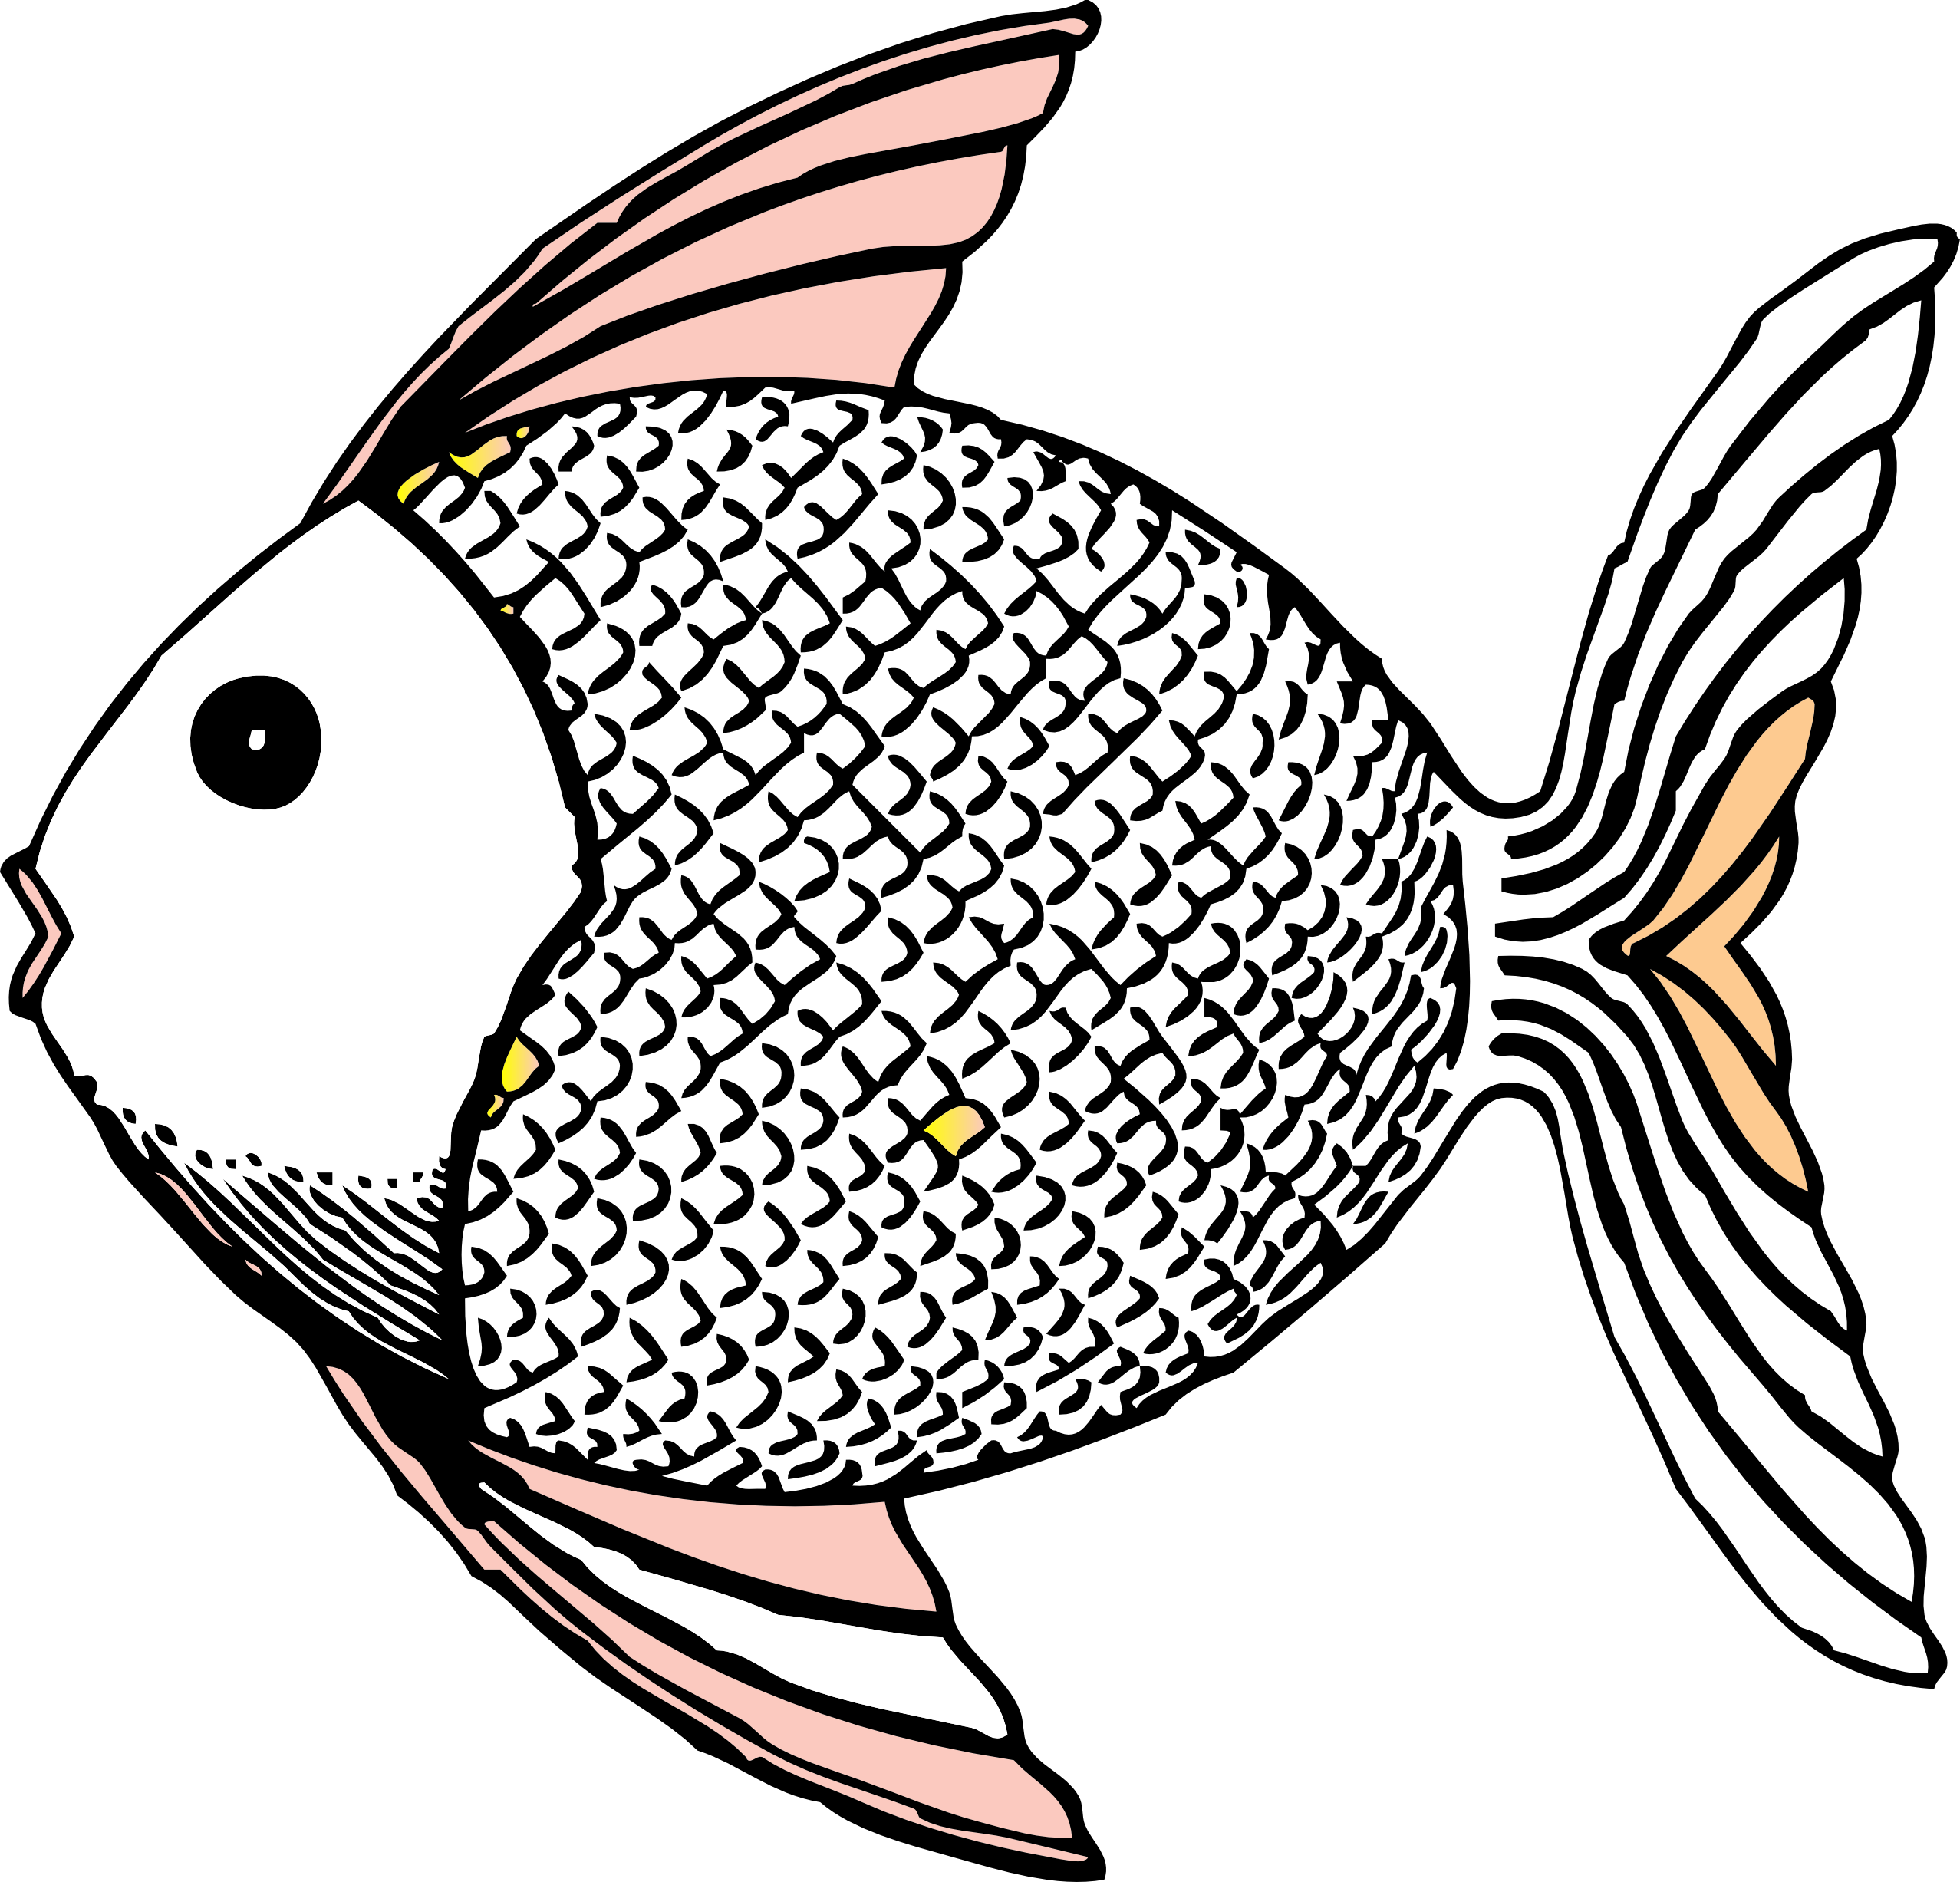 Surprised fish clipart banner library stock Fish Clip Art Black and White | tropical fish black white line art ... banner library stock